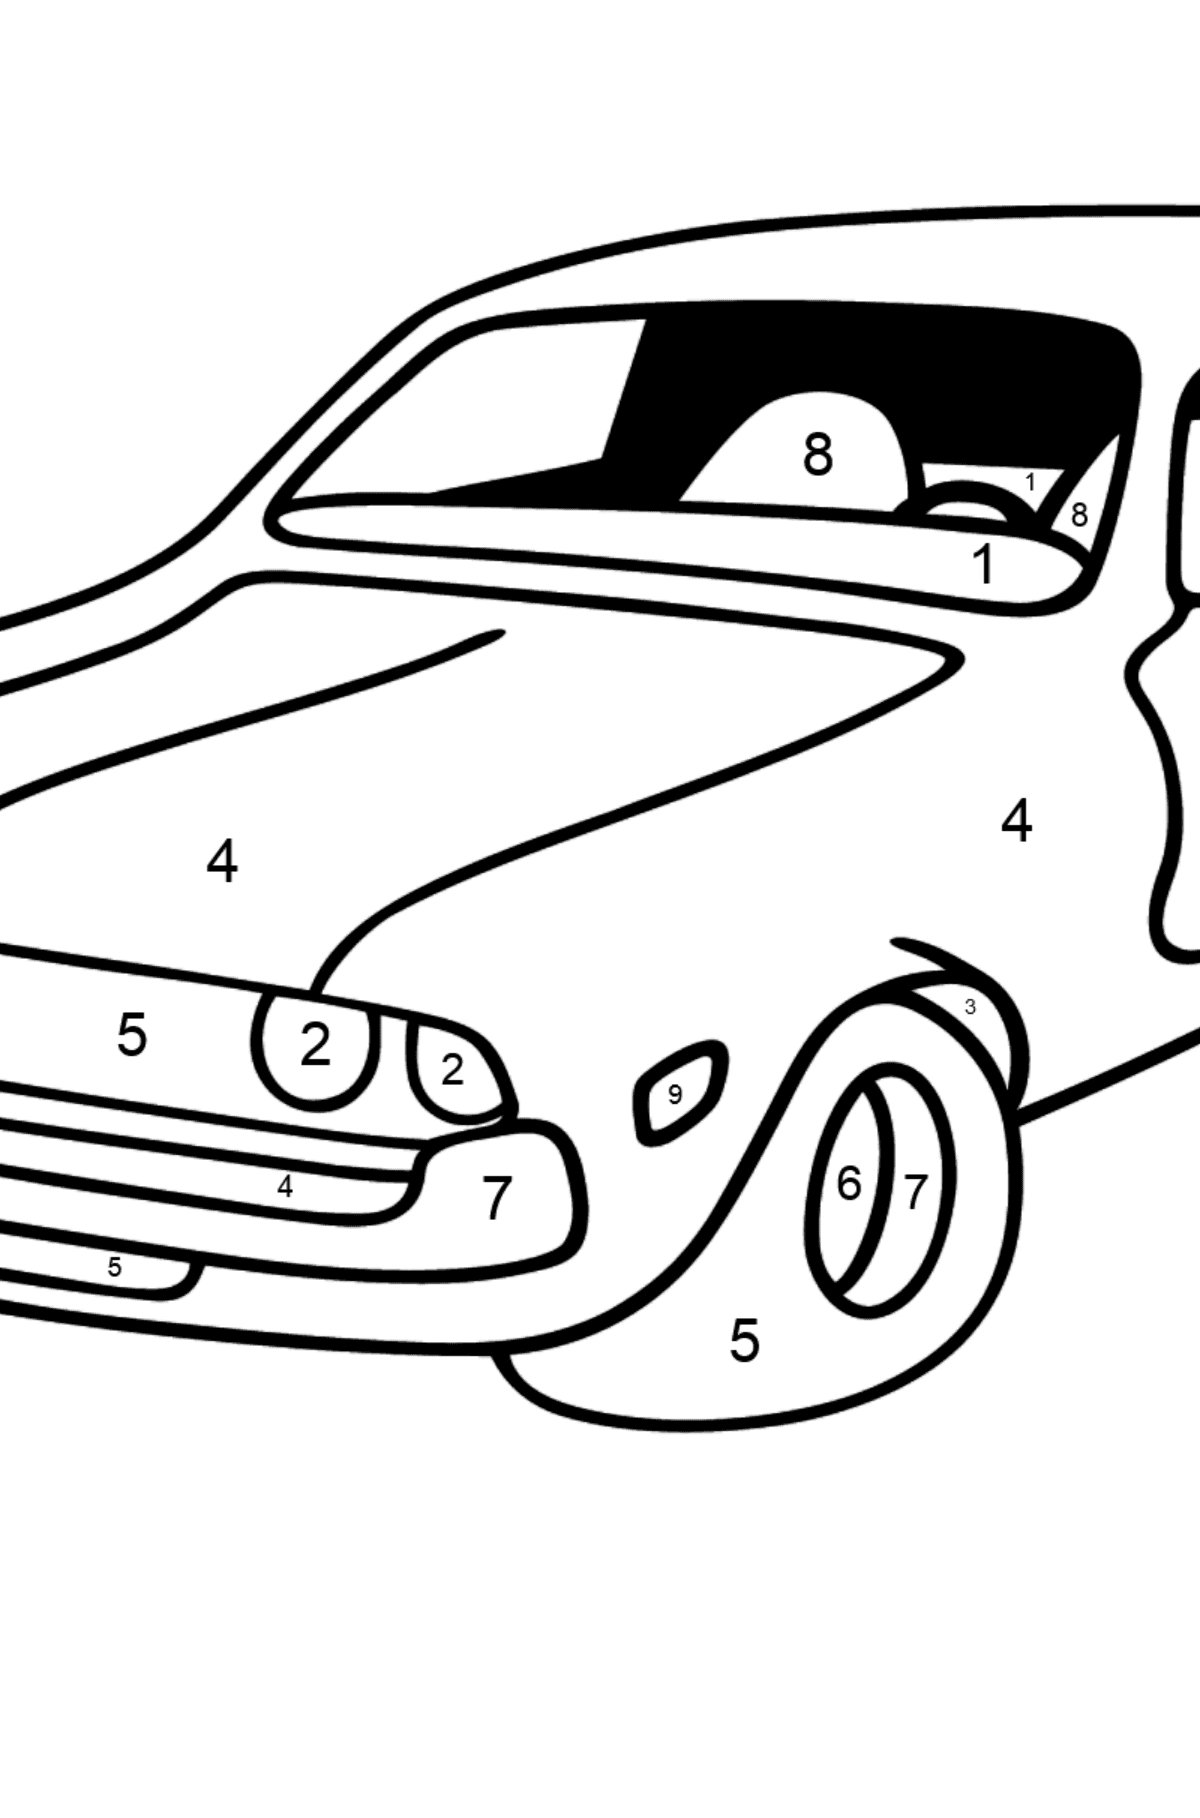 Chevrolet gray car coloring page - Coloring by Numbers for Kids